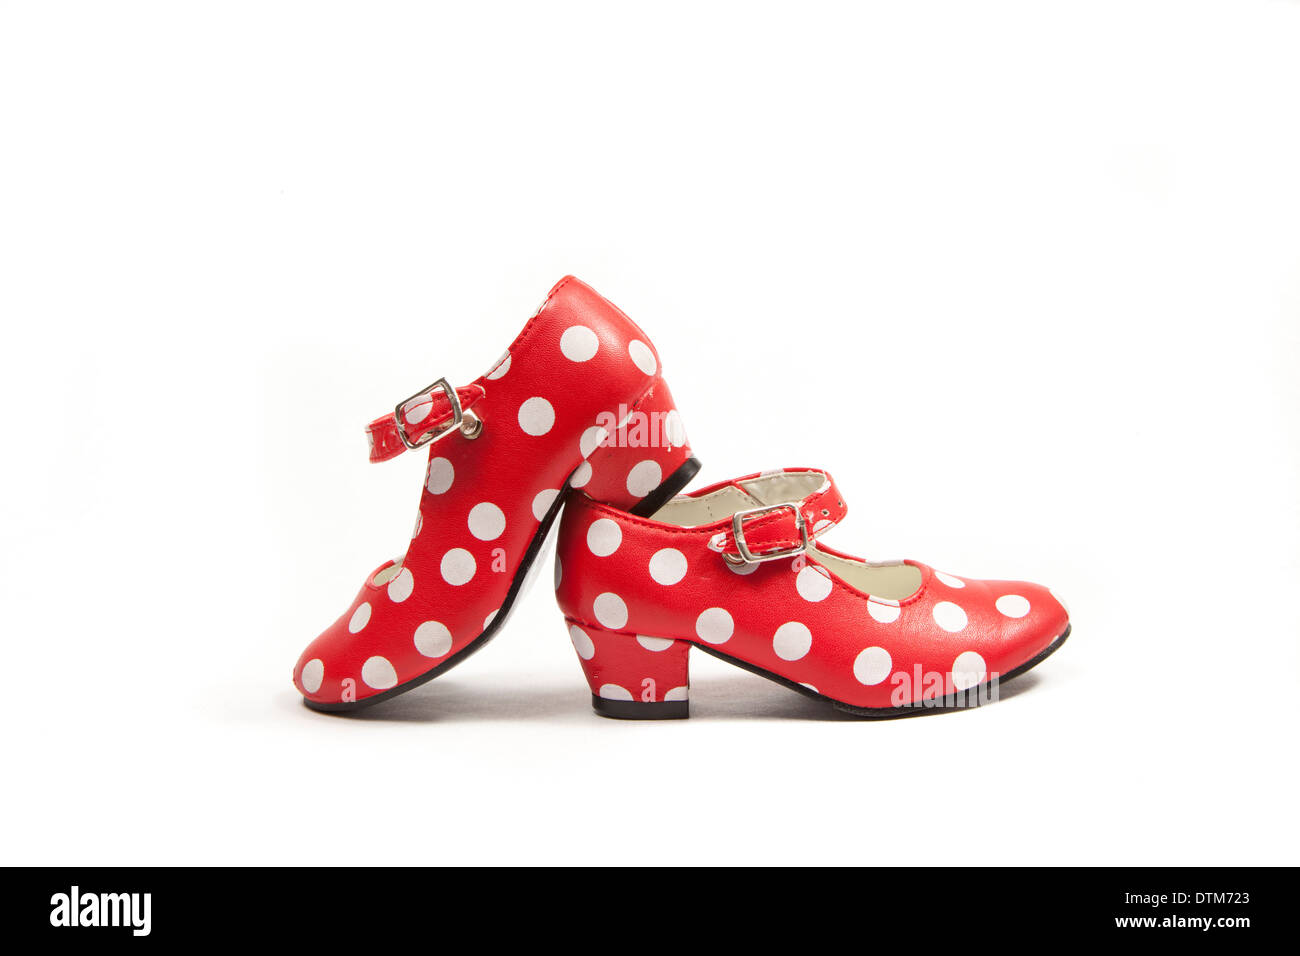 two flamenco dancing used shoes with polka dots. - Stock Image